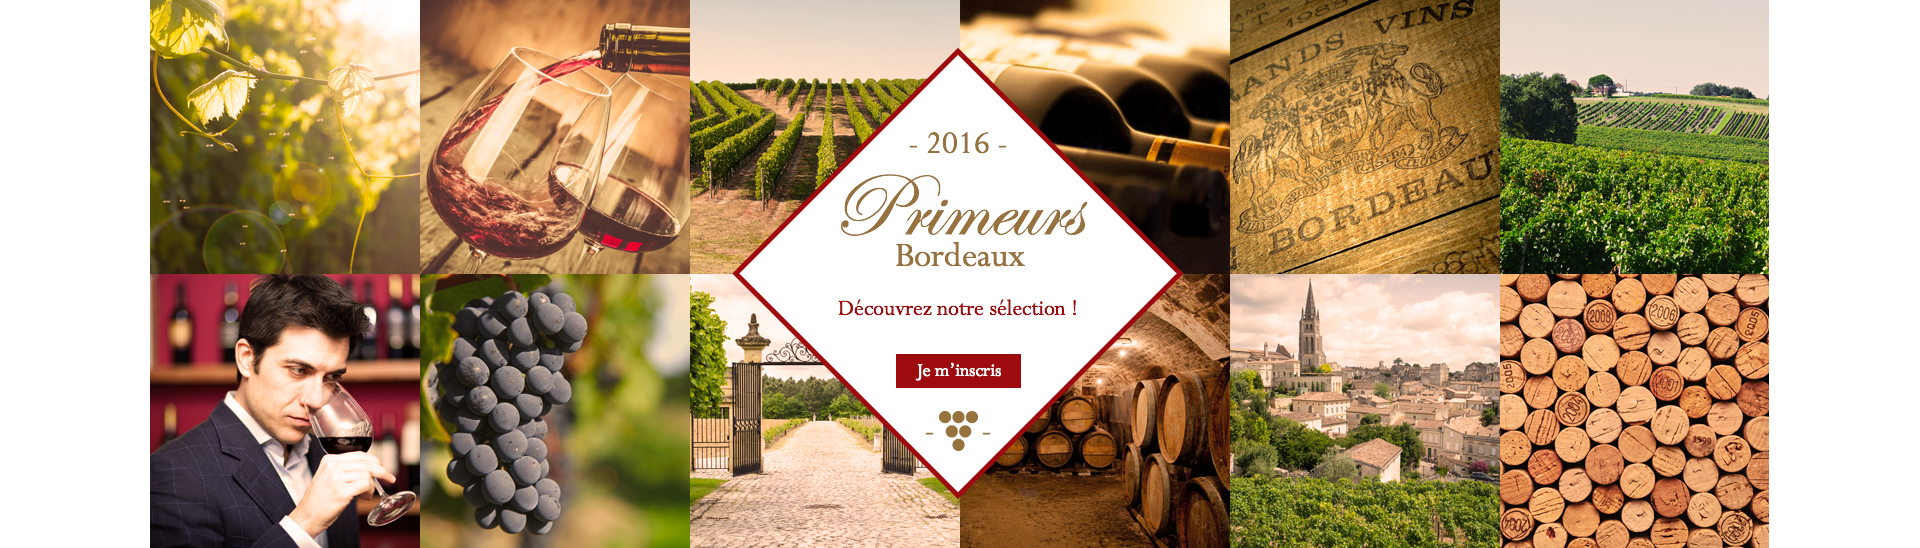 Inscription Primeurs Bordeaux 2016